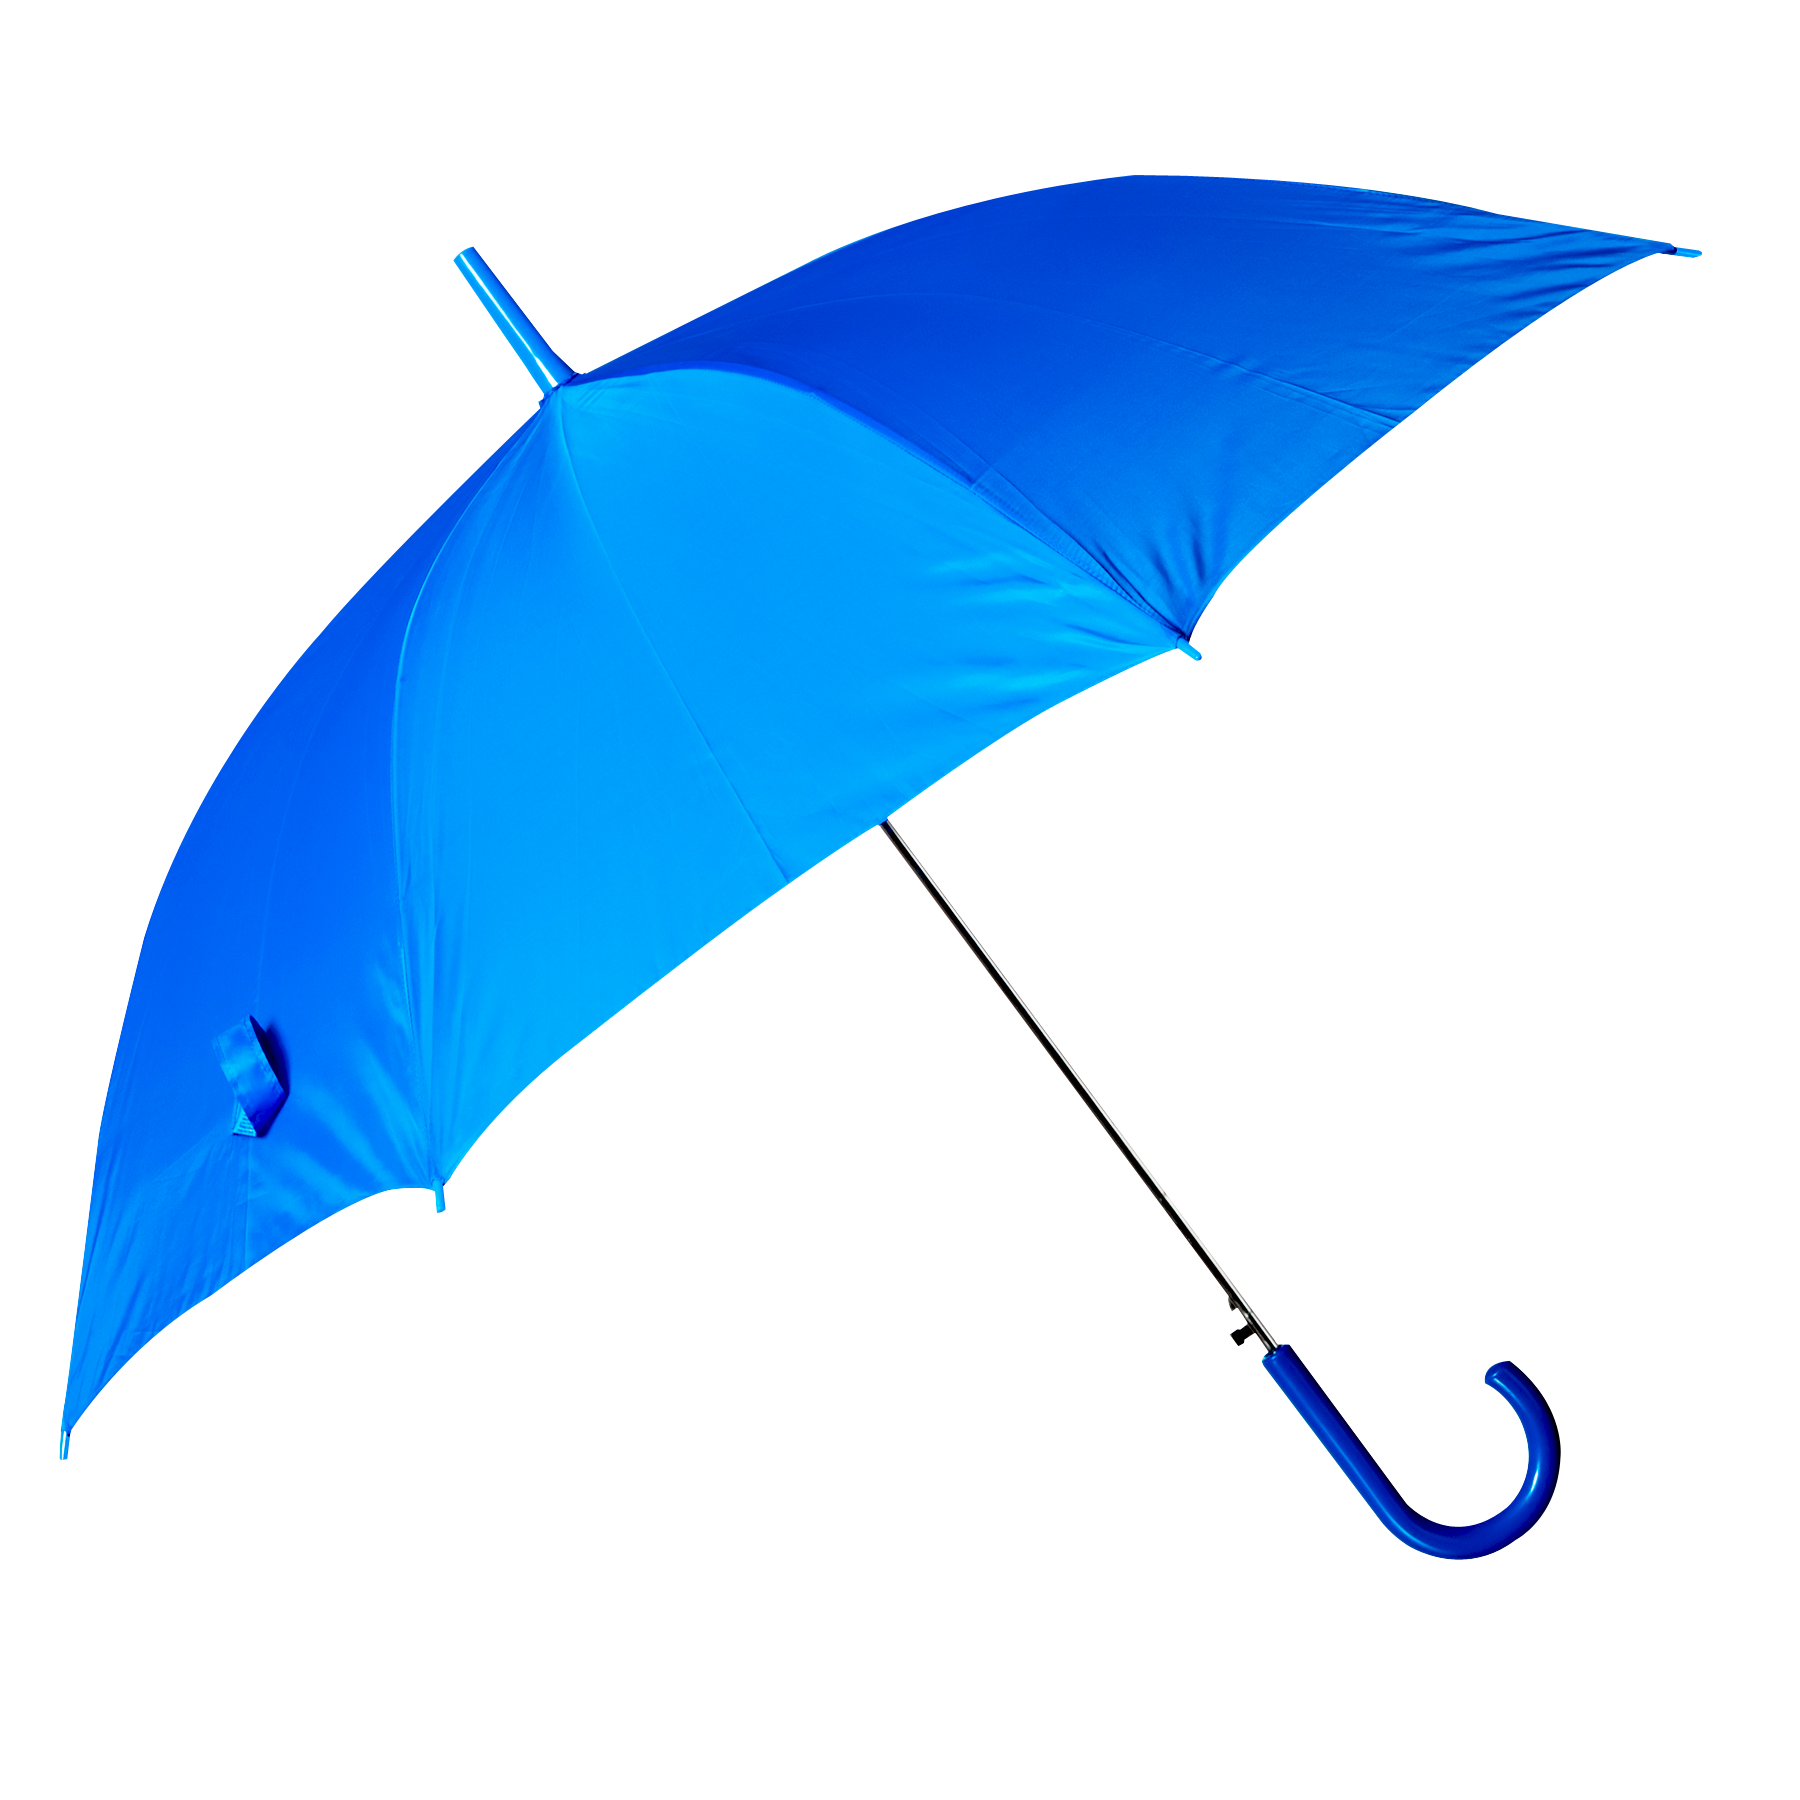 Umbrella PNG - 26949